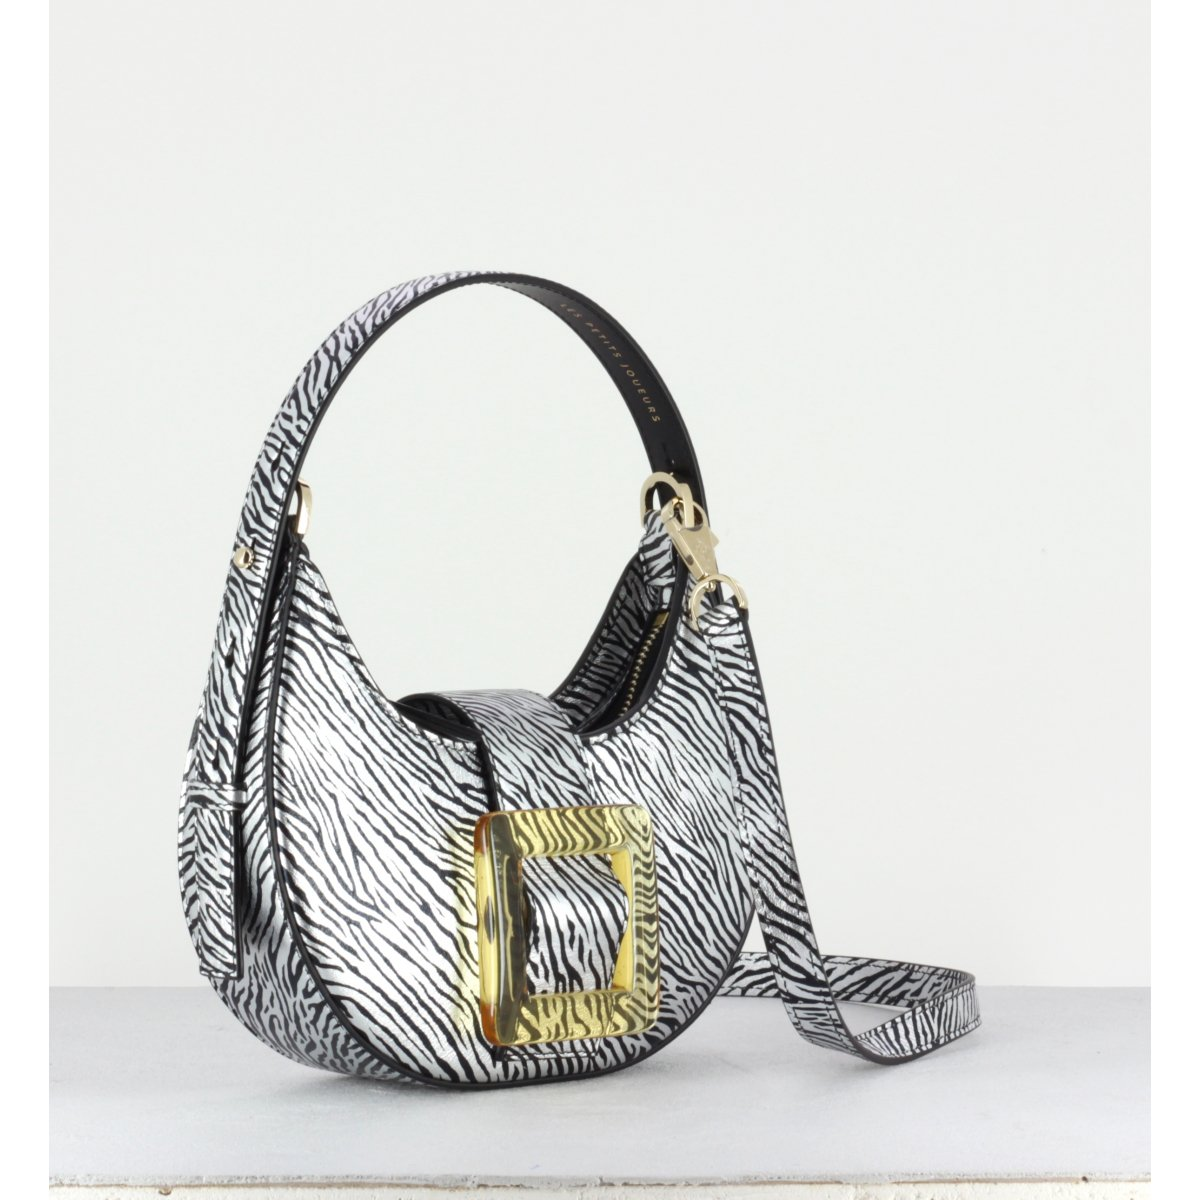 CINDY GLOSSY BUCKLE BAG - ZEBRA PRINT